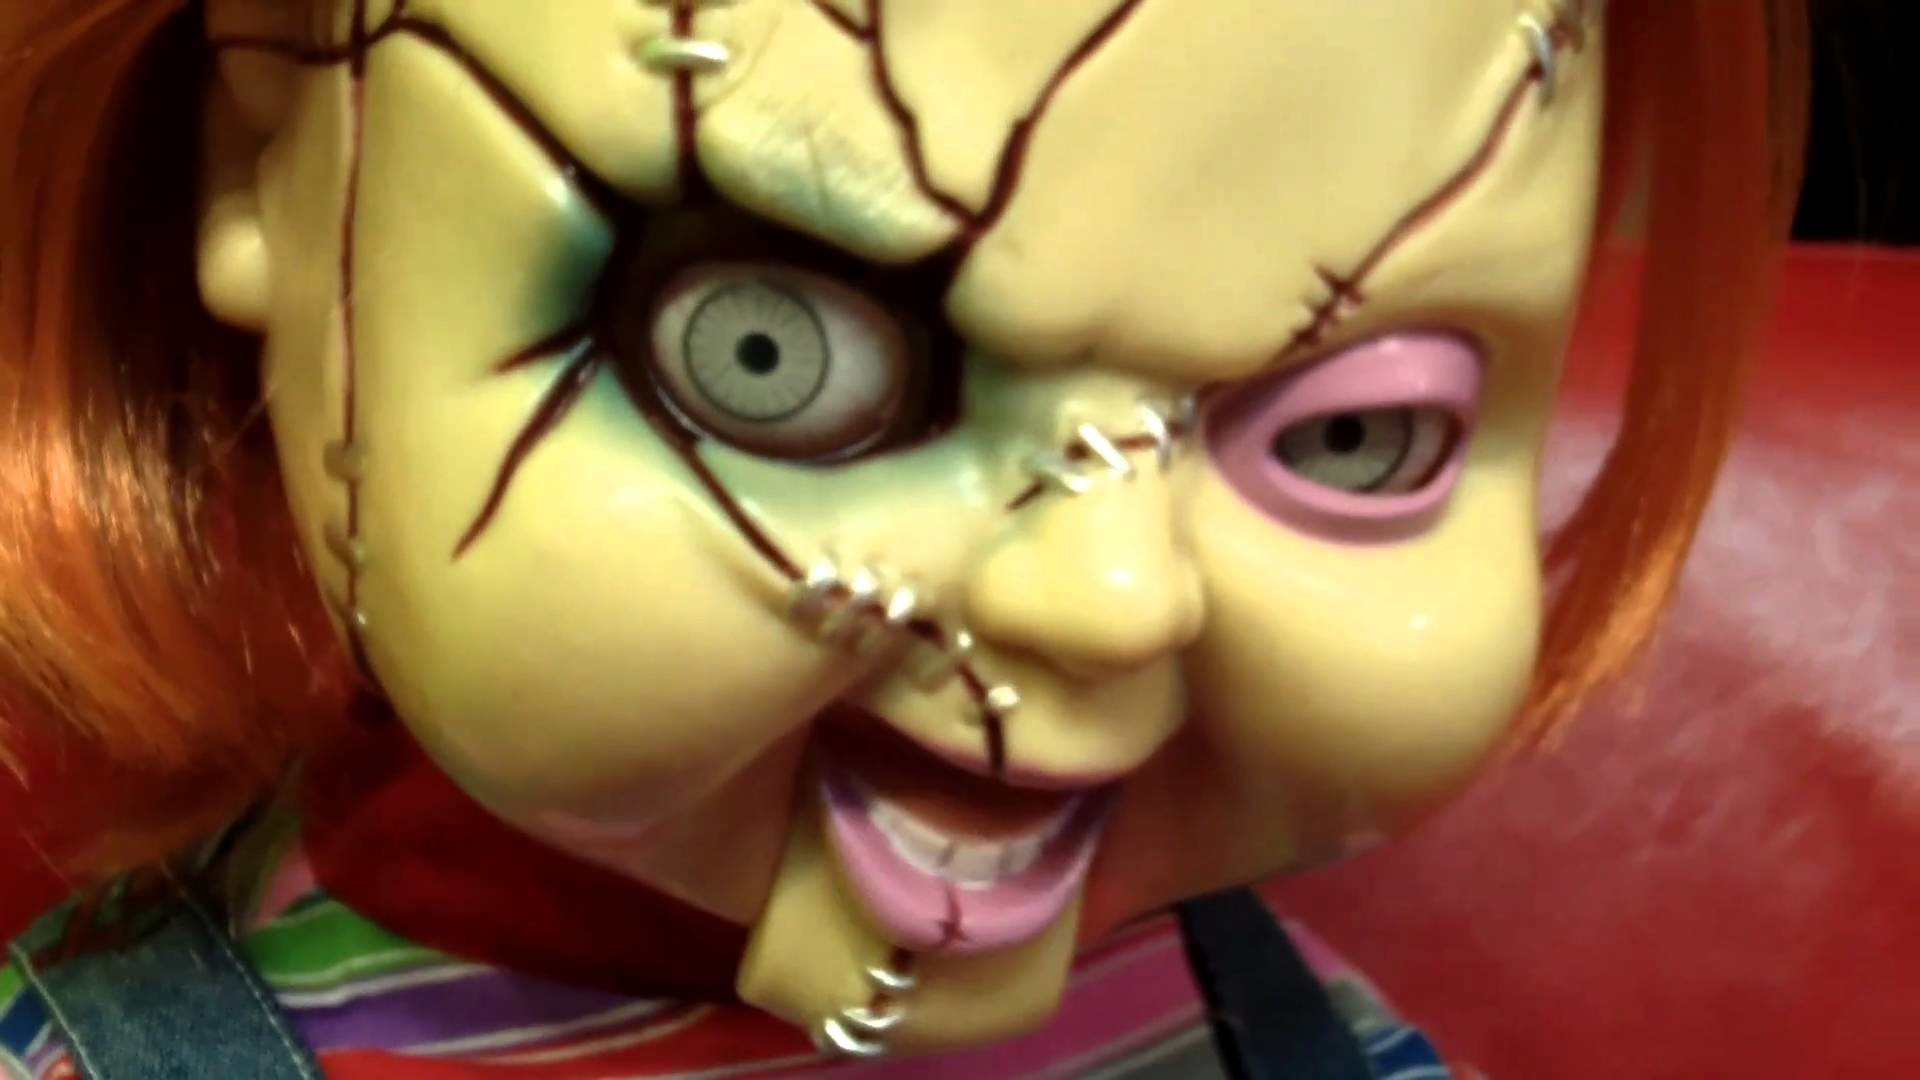 1920x1080 Chucky SCARY Animated Life-Size Talking Doll by Mike Mozart of  TheToyChannel - YouTube